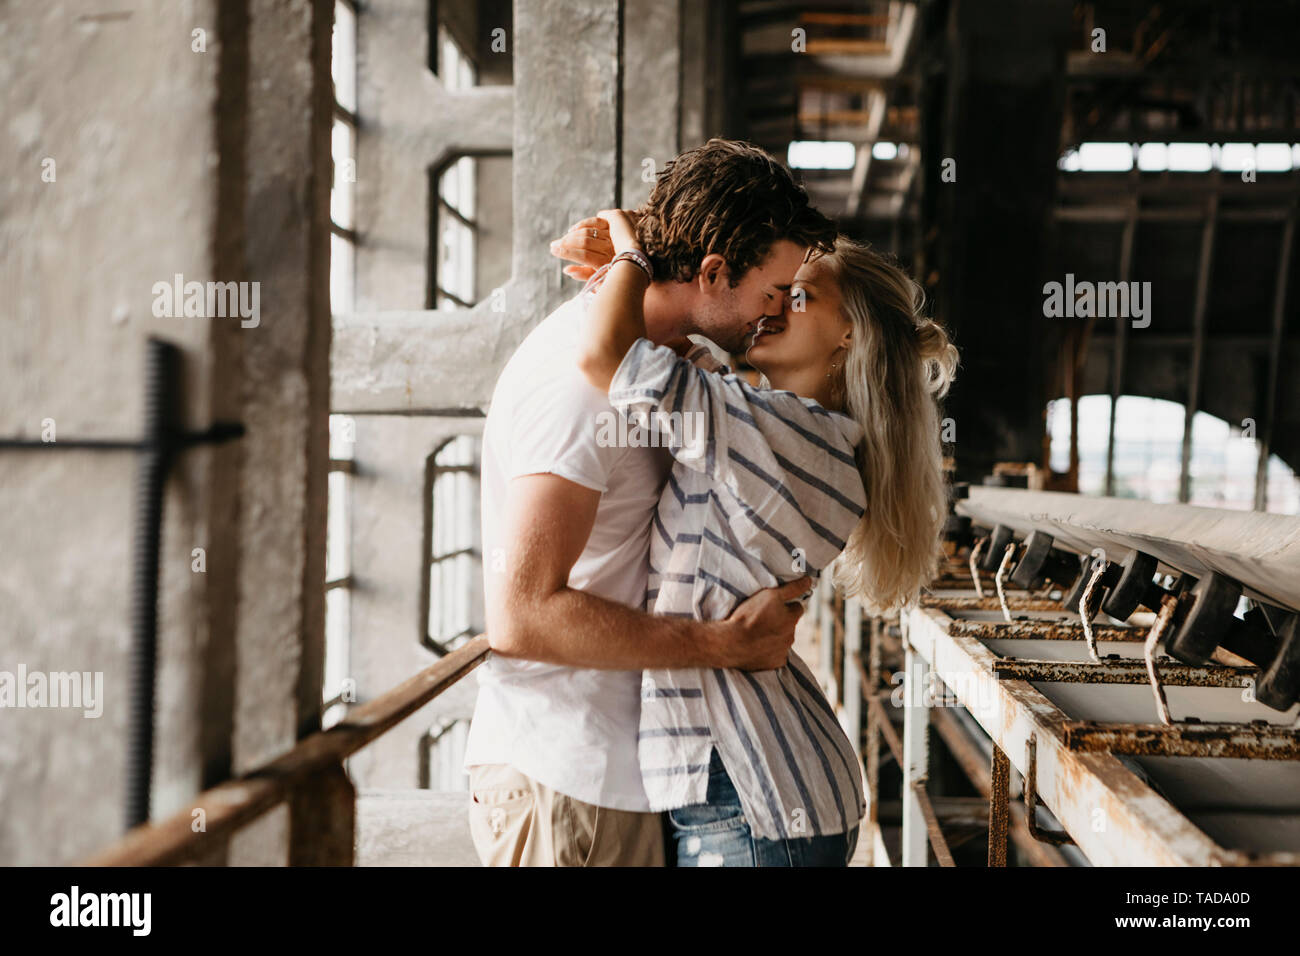 Young couple kissing in an old train station - Stock Image